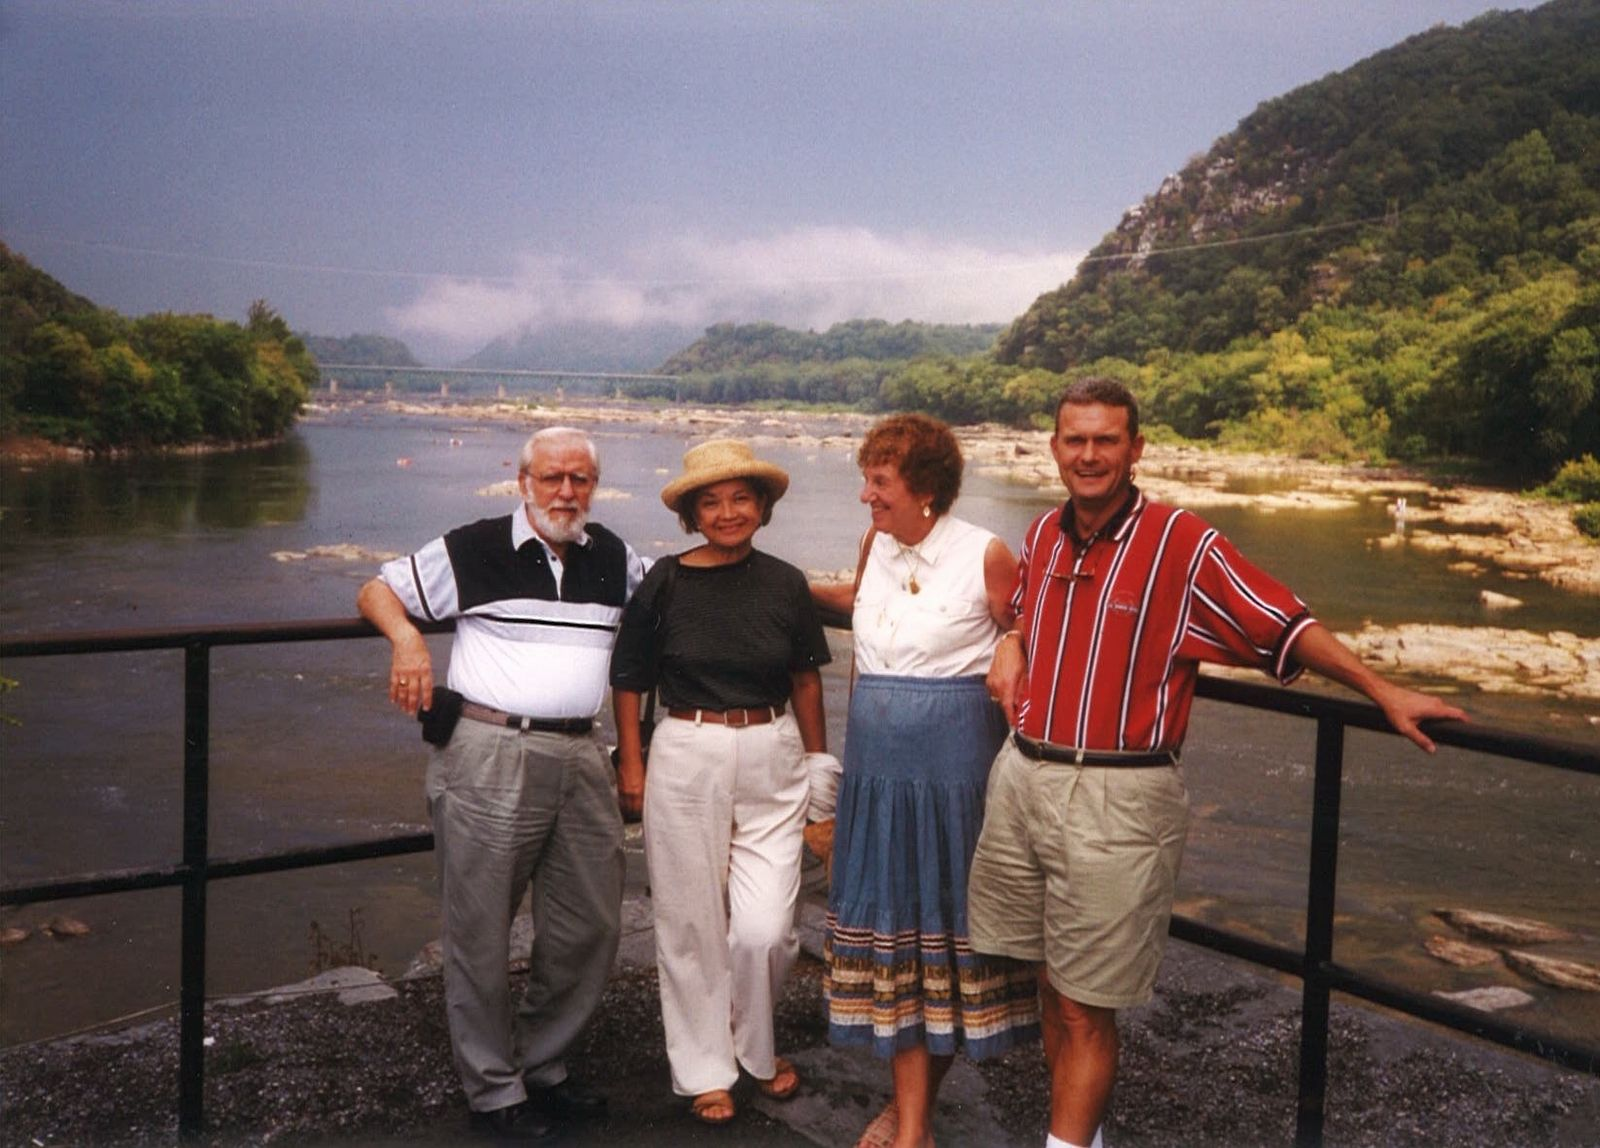 Ted Miller, Carmen Neuberger, Phyllis Mable, and Doug Lange